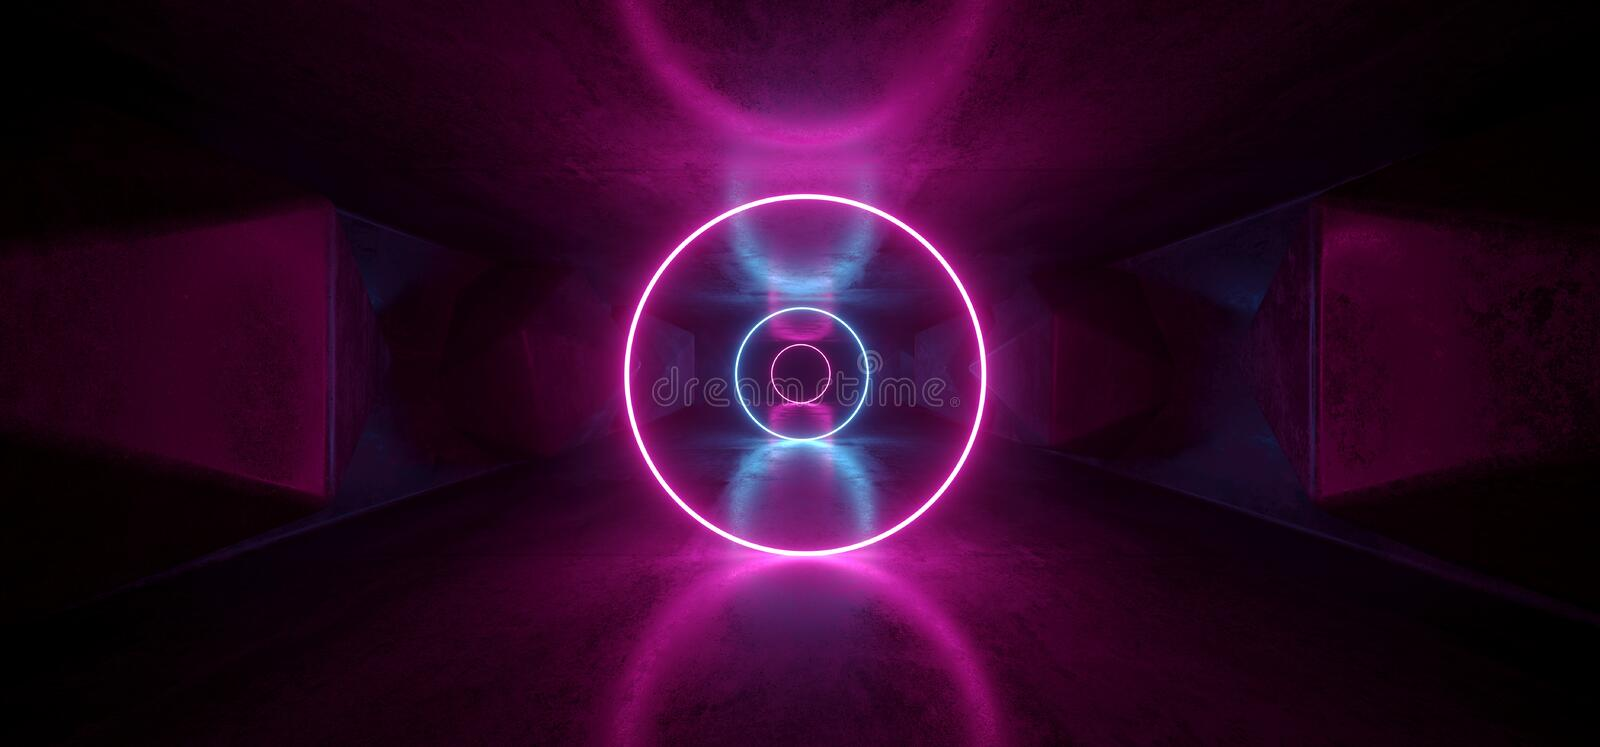 Neon Glowing Psychedelic Vibrant Cosmic Ultraviolet Fluorescent Luxurious Luminous Sci Fi Futuristic Retro Circle Lights Purple vector illustration